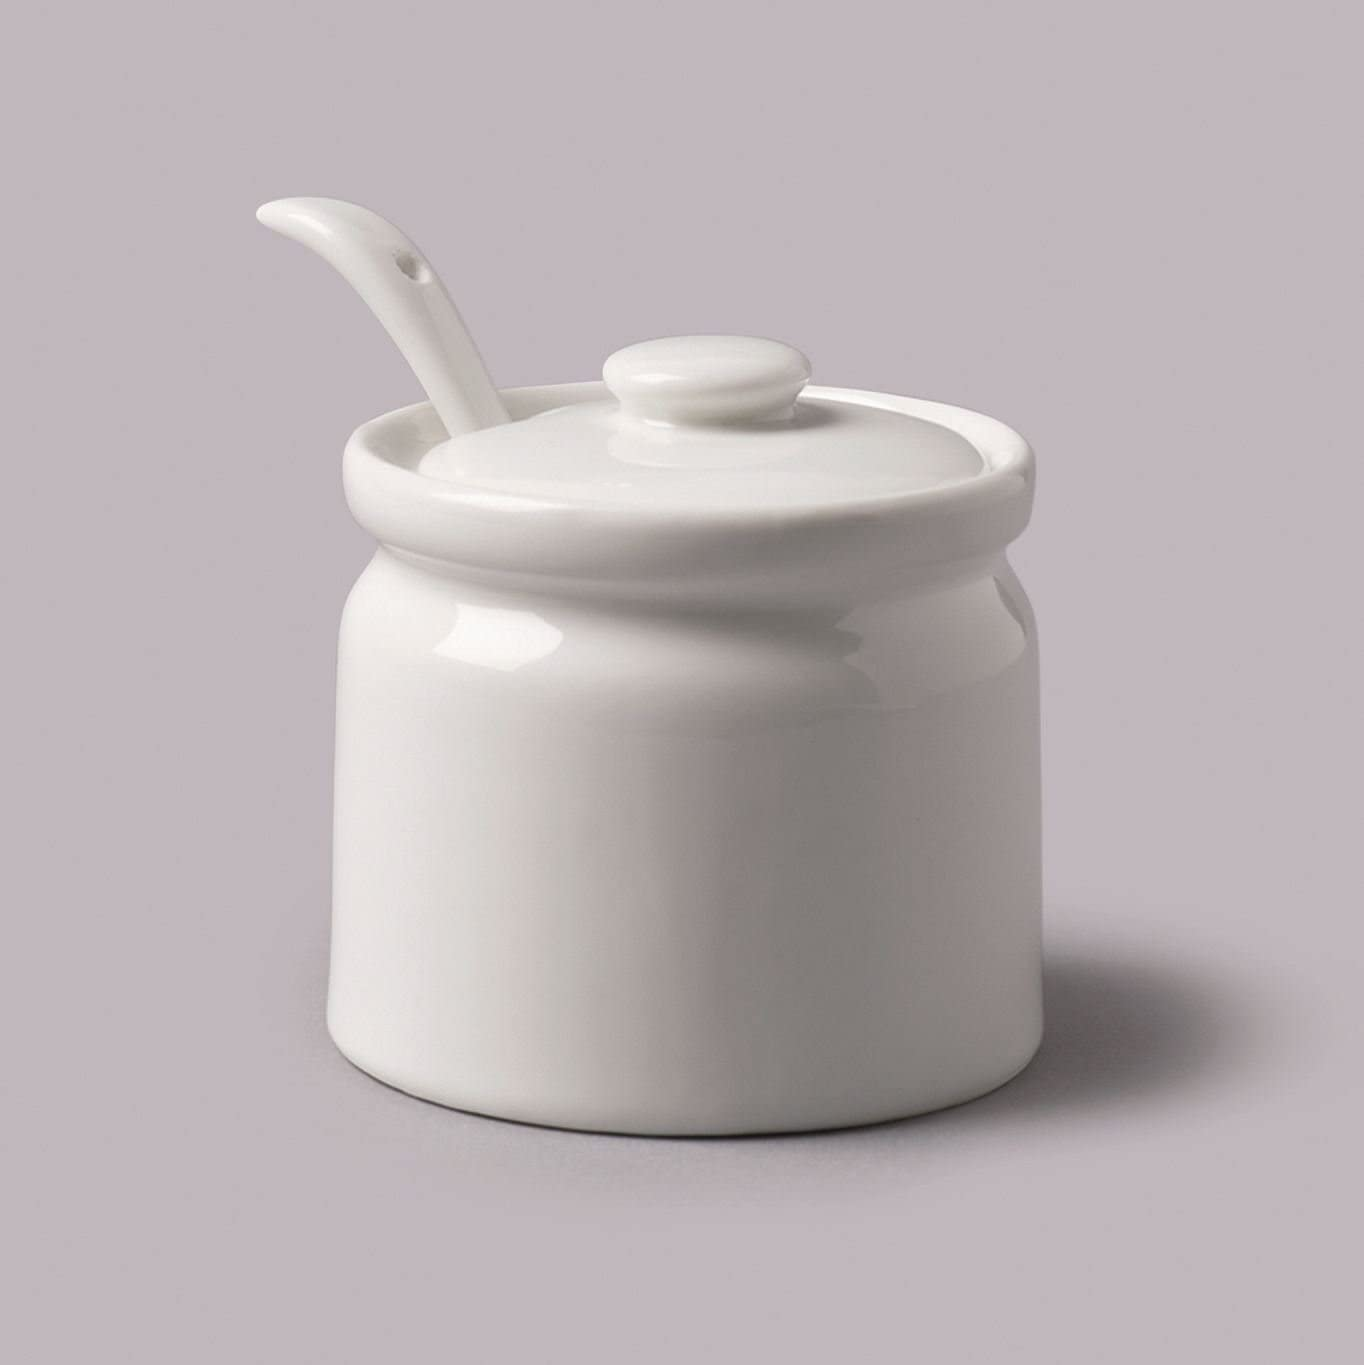 WM Bartleet /& Sons Ceramic White Flour Sugar Shaker Sifter with Handle